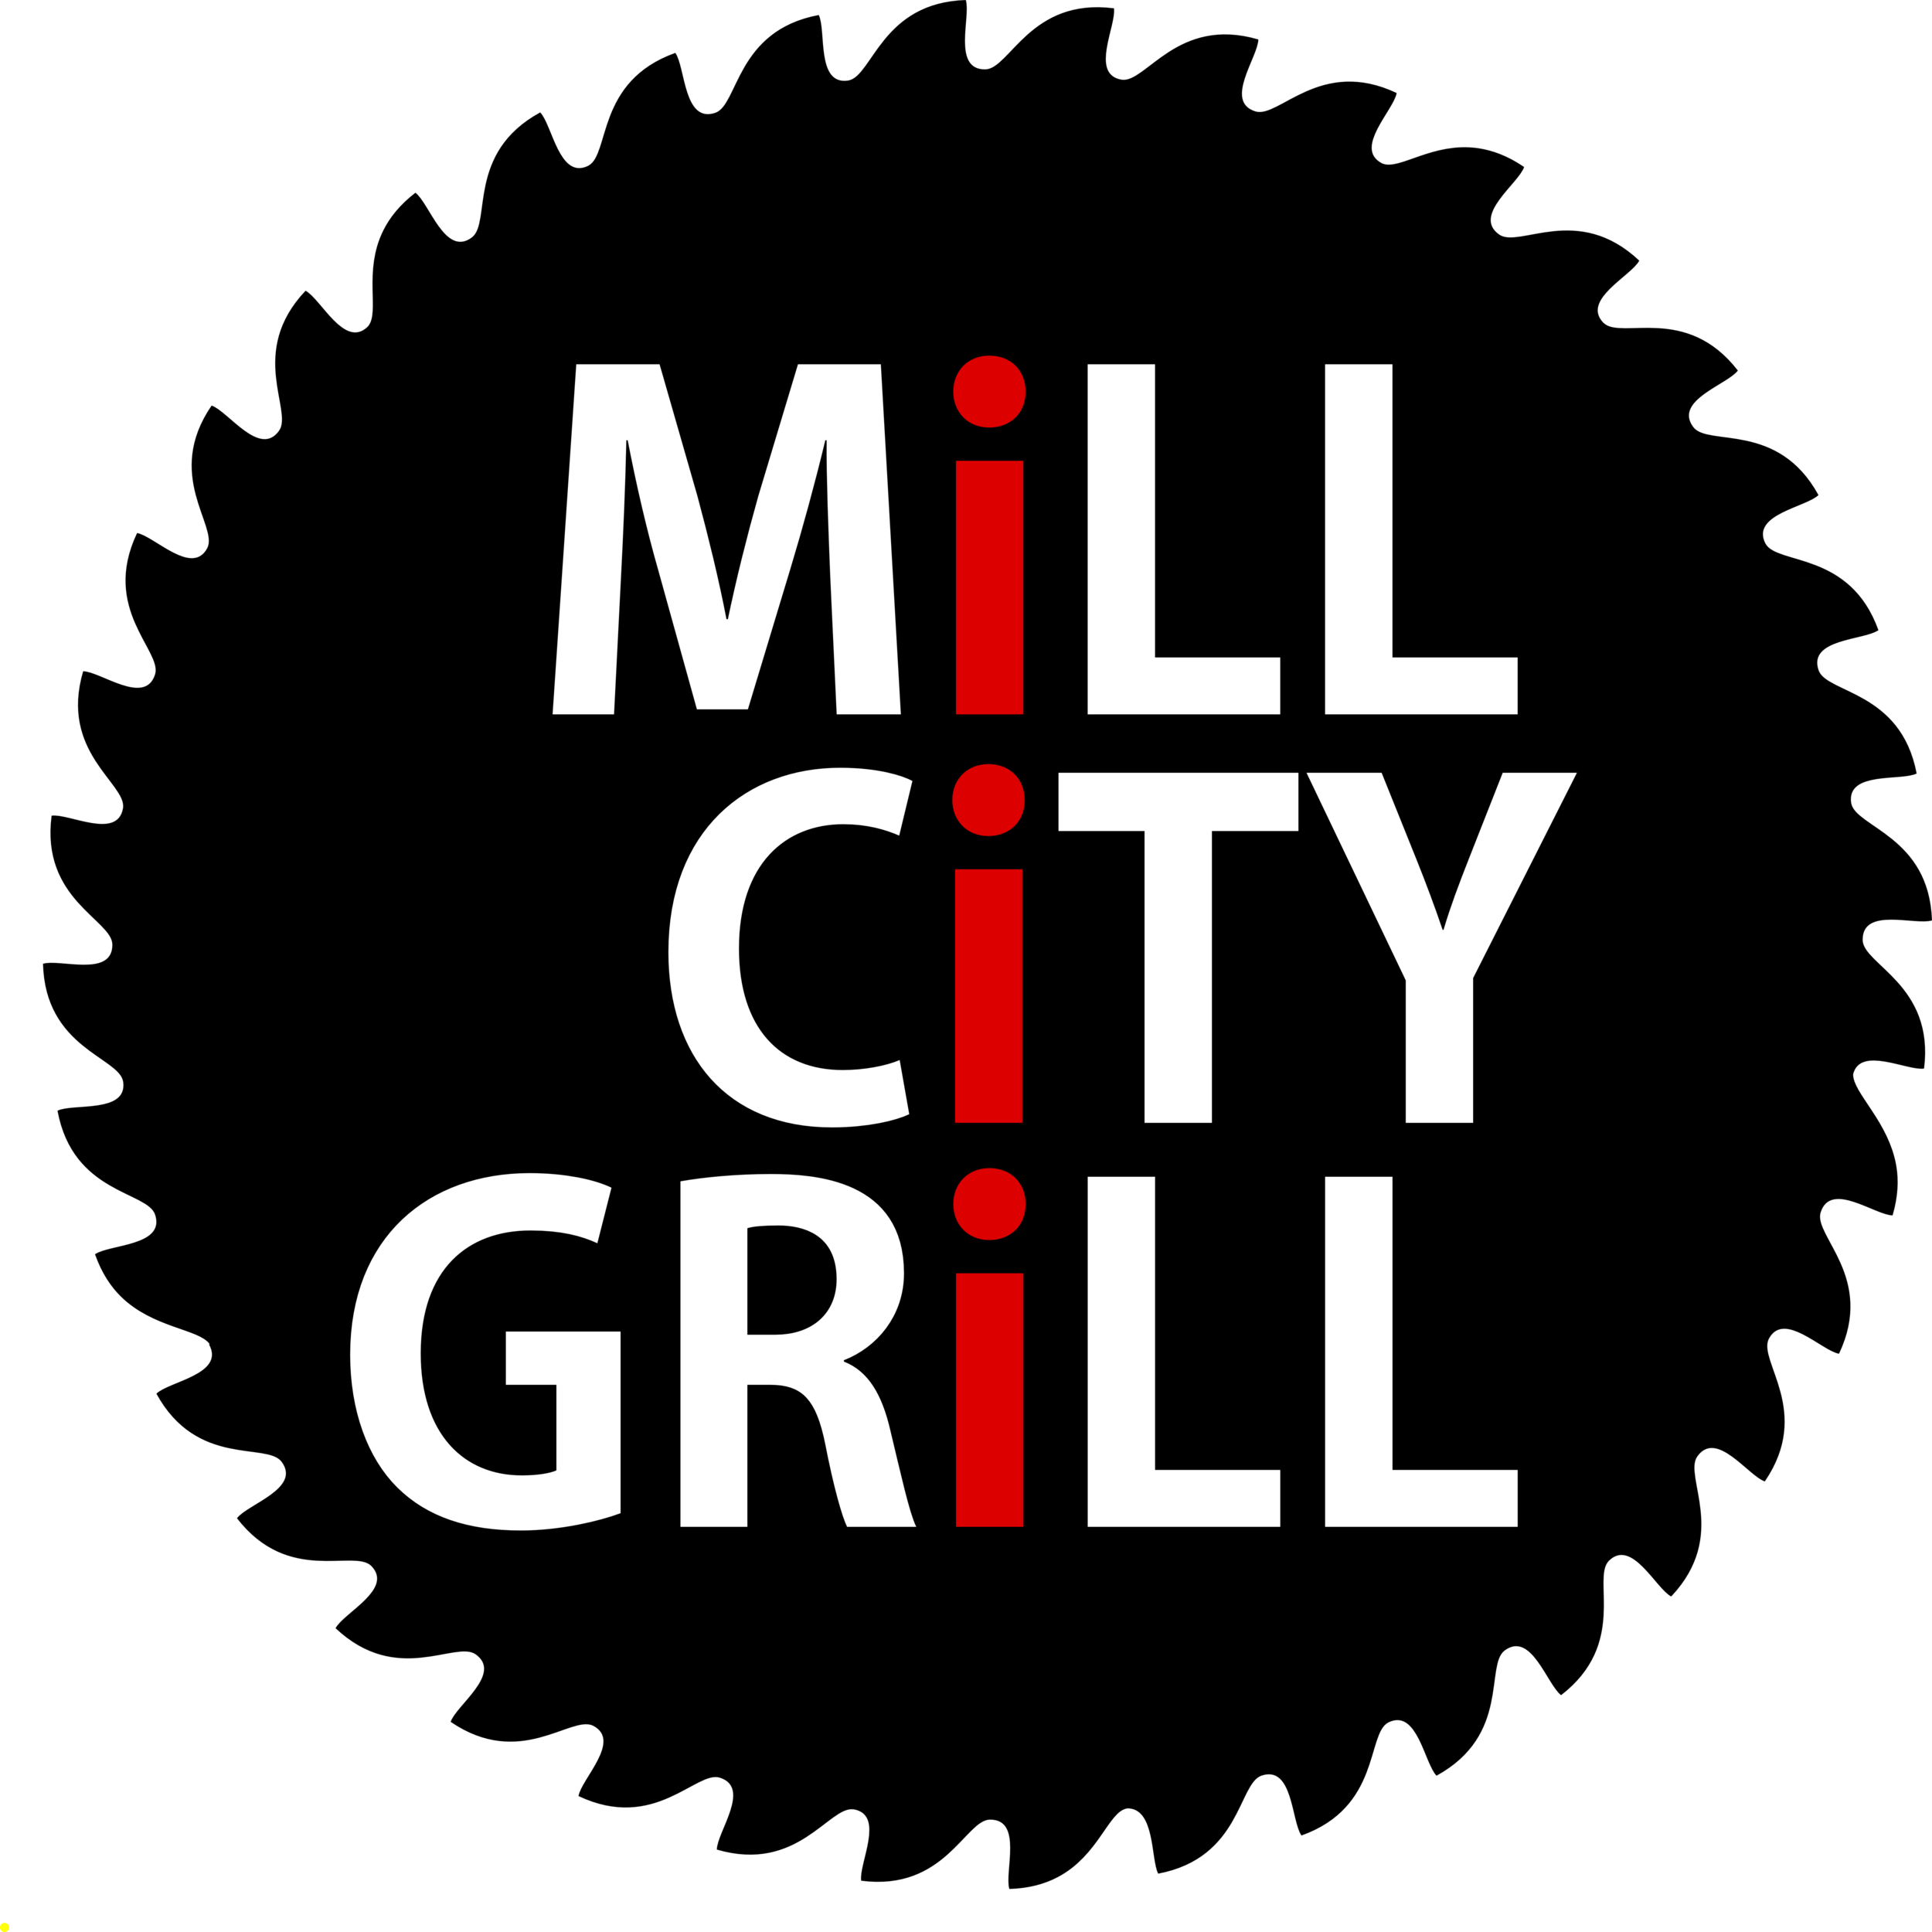 #5 Mill City - 1260 Commerce Avenue, Longview360-703-3904www.millcitygrill.com